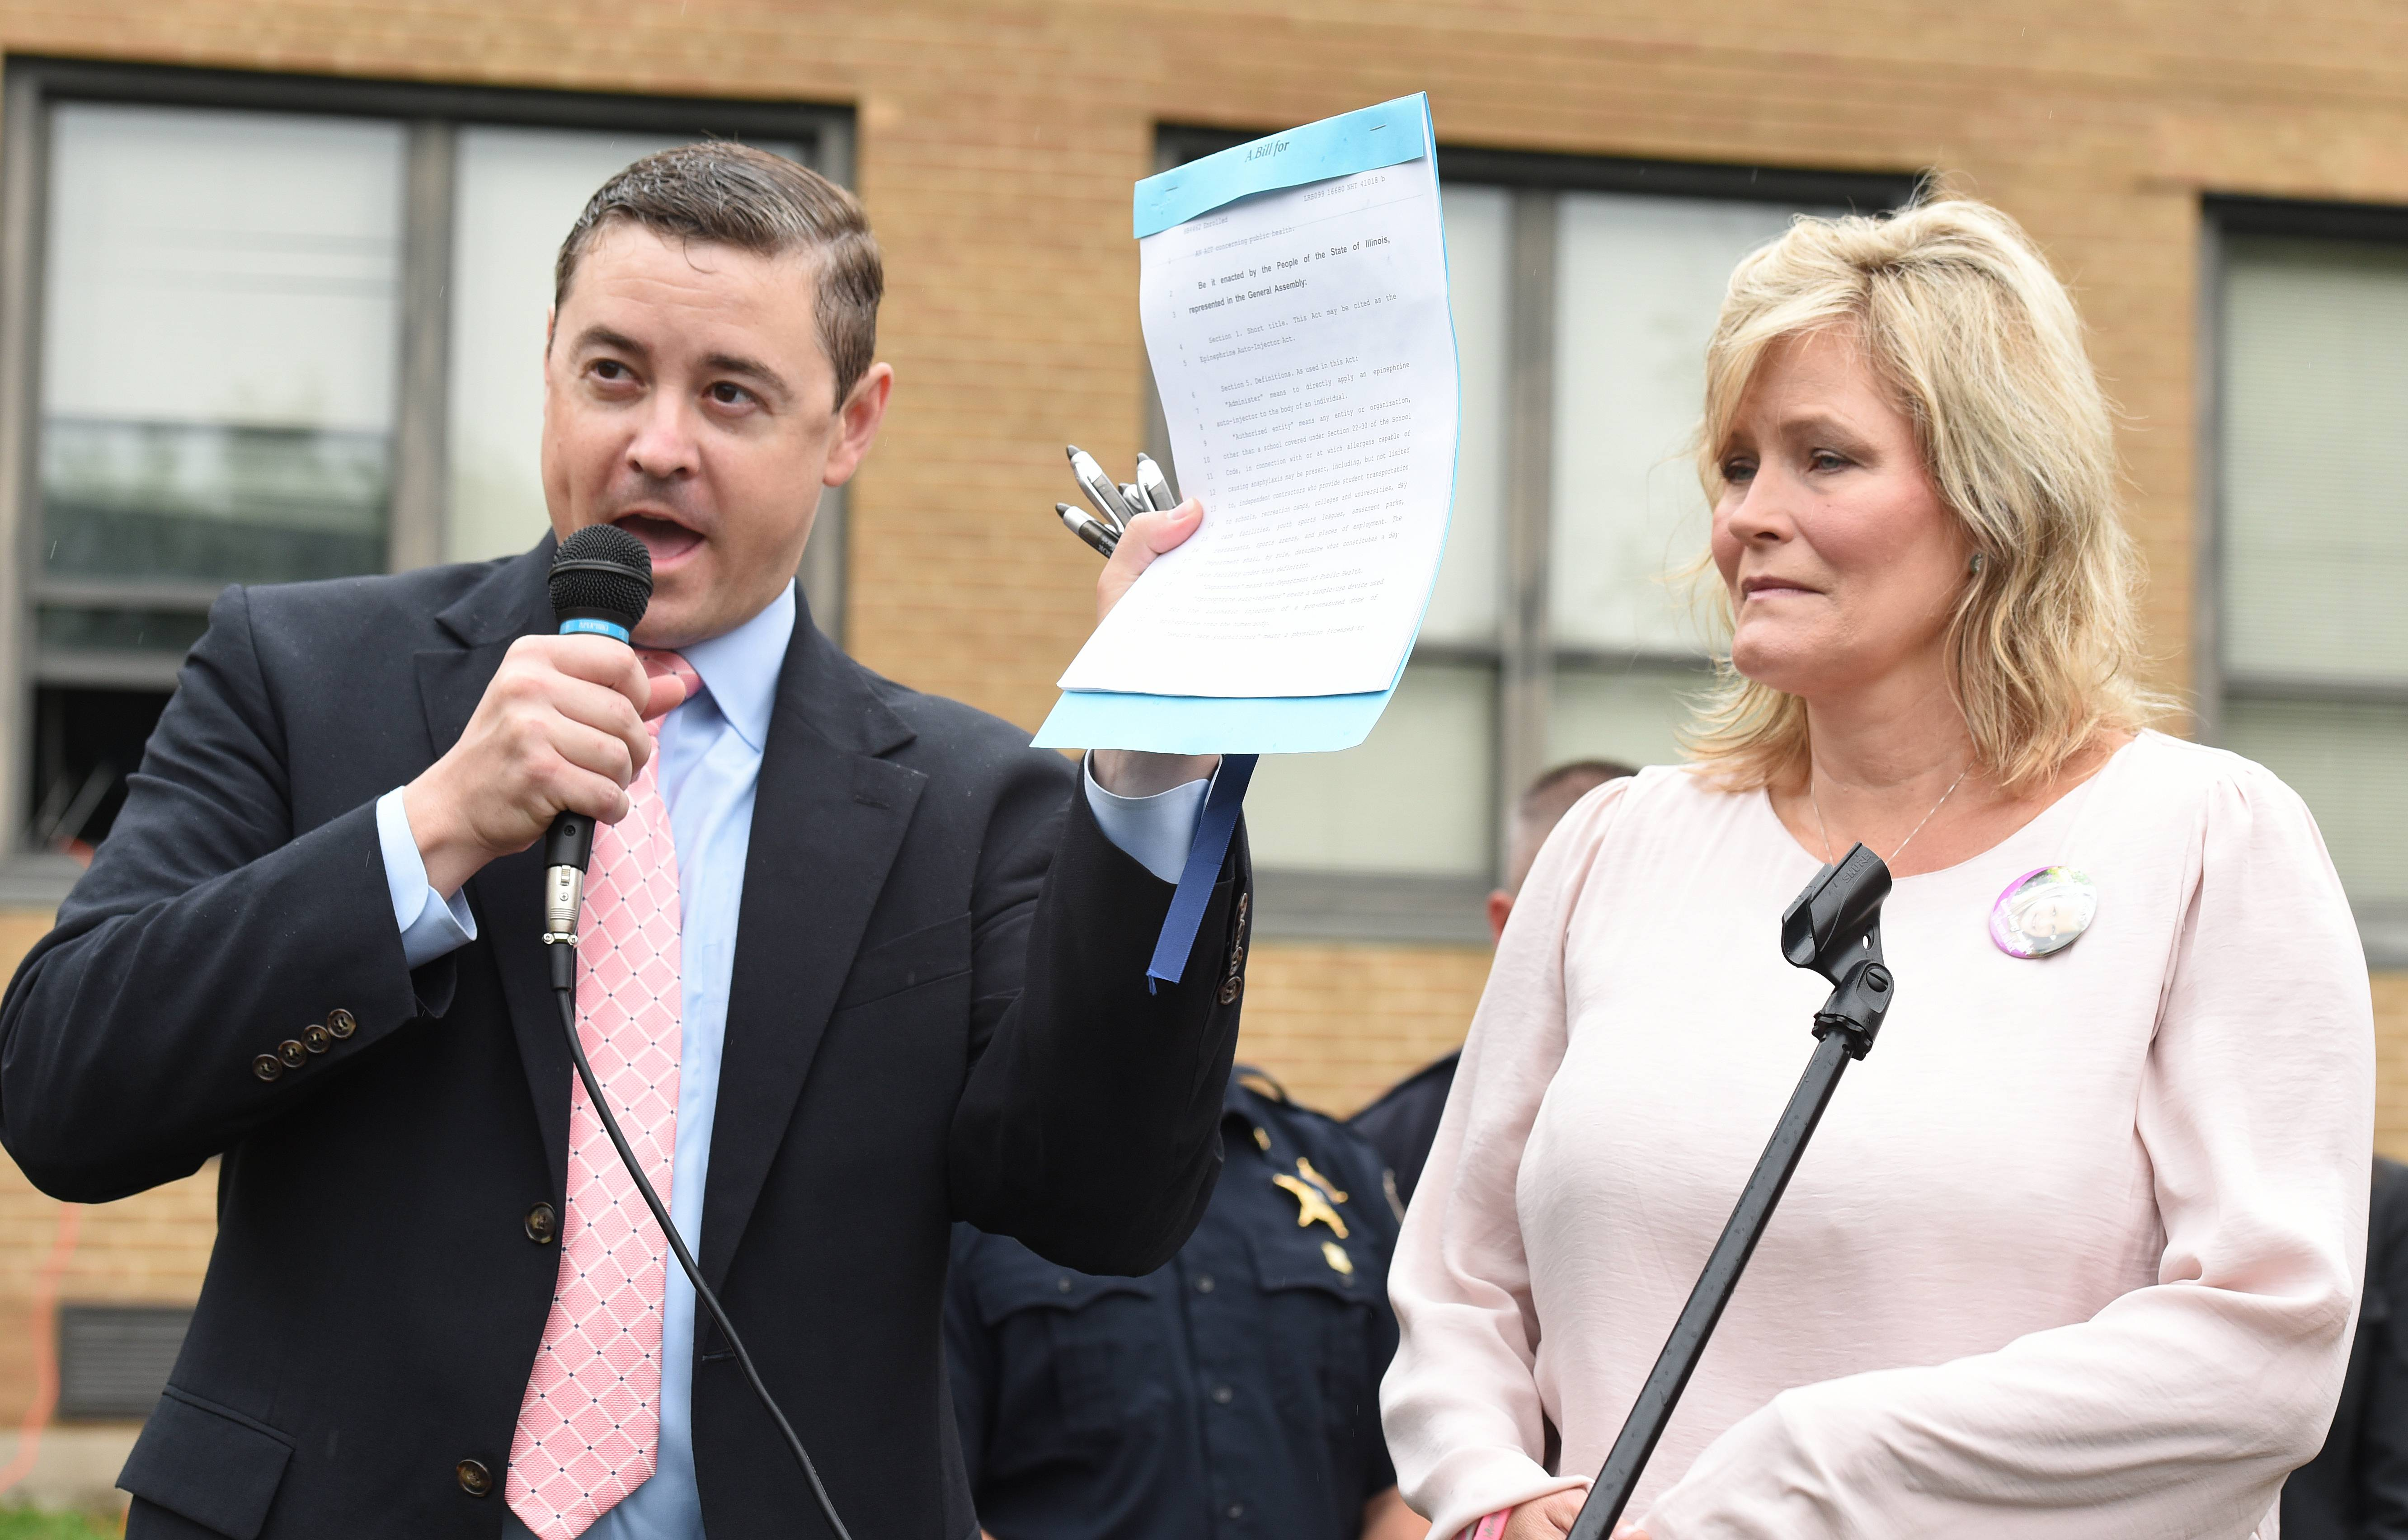 Republican state Sen. Chris Nybo of Elmhurst and Shelly LeGere show off a copy of the Annie LeGere Law that authorizes police to carry and administer epinephrine auto-injectors at Sandburg Middle School in Elmhurst Saturday.